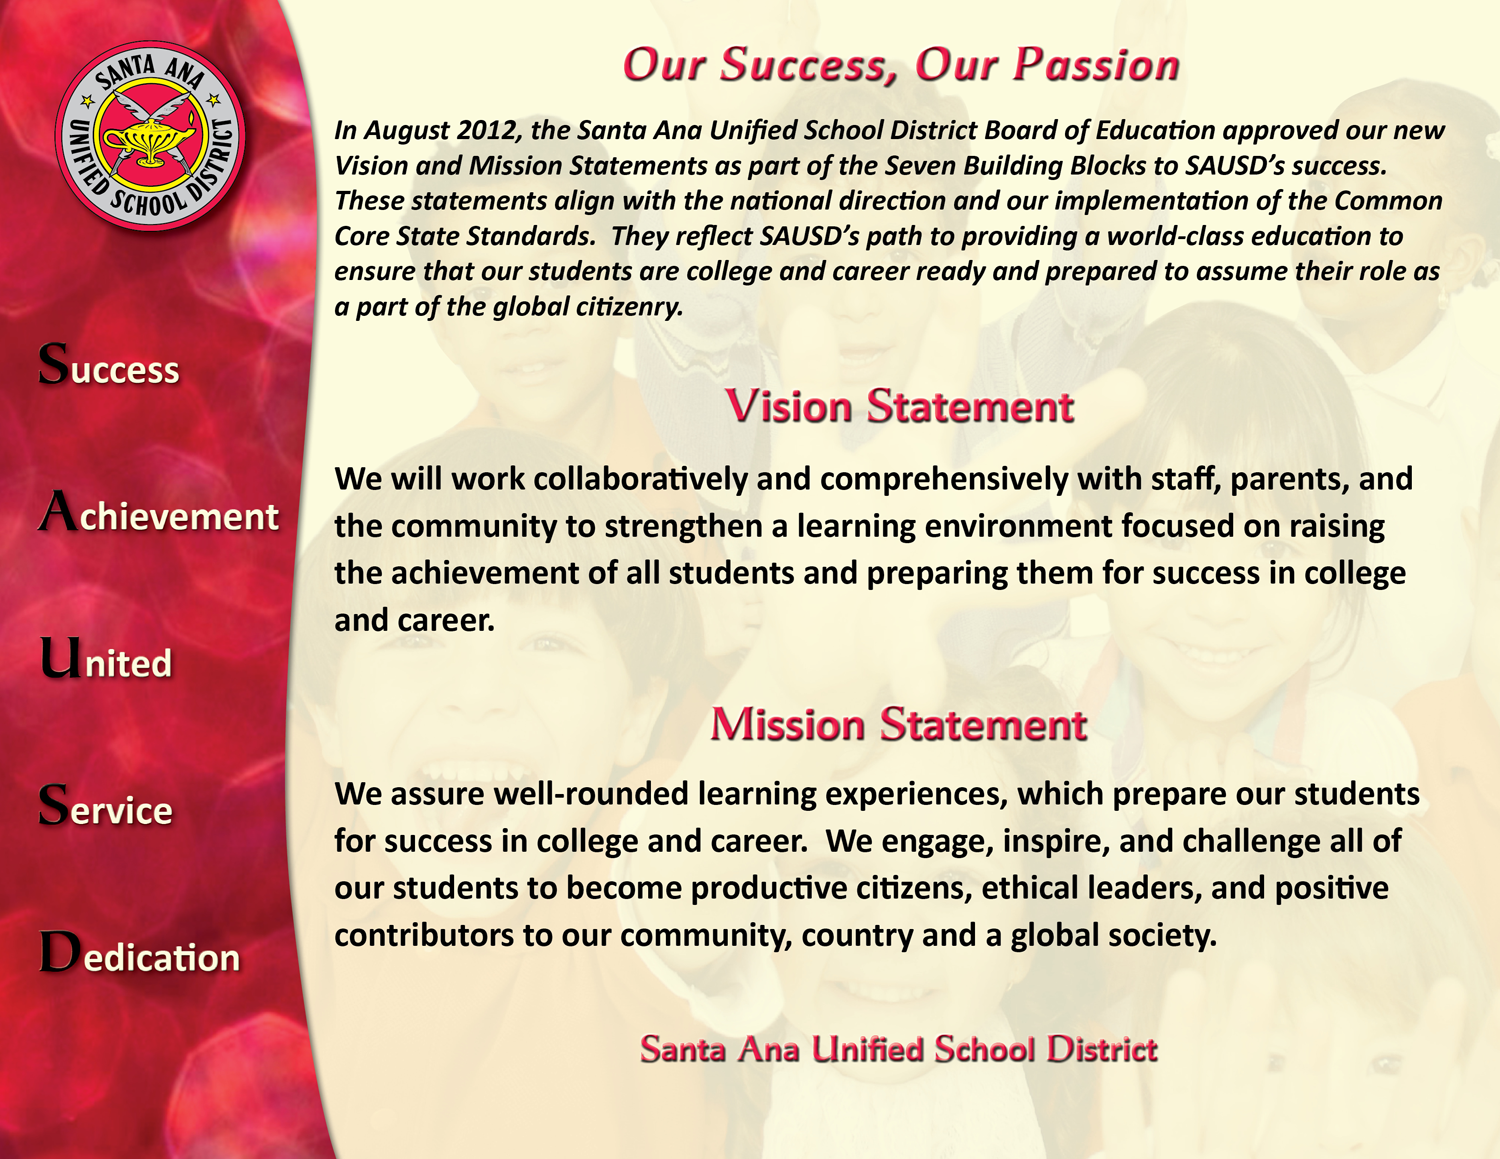 personal vision and mission statements for teachers why not buy personal vision and mission statements for teachers why not buy custom hq essays